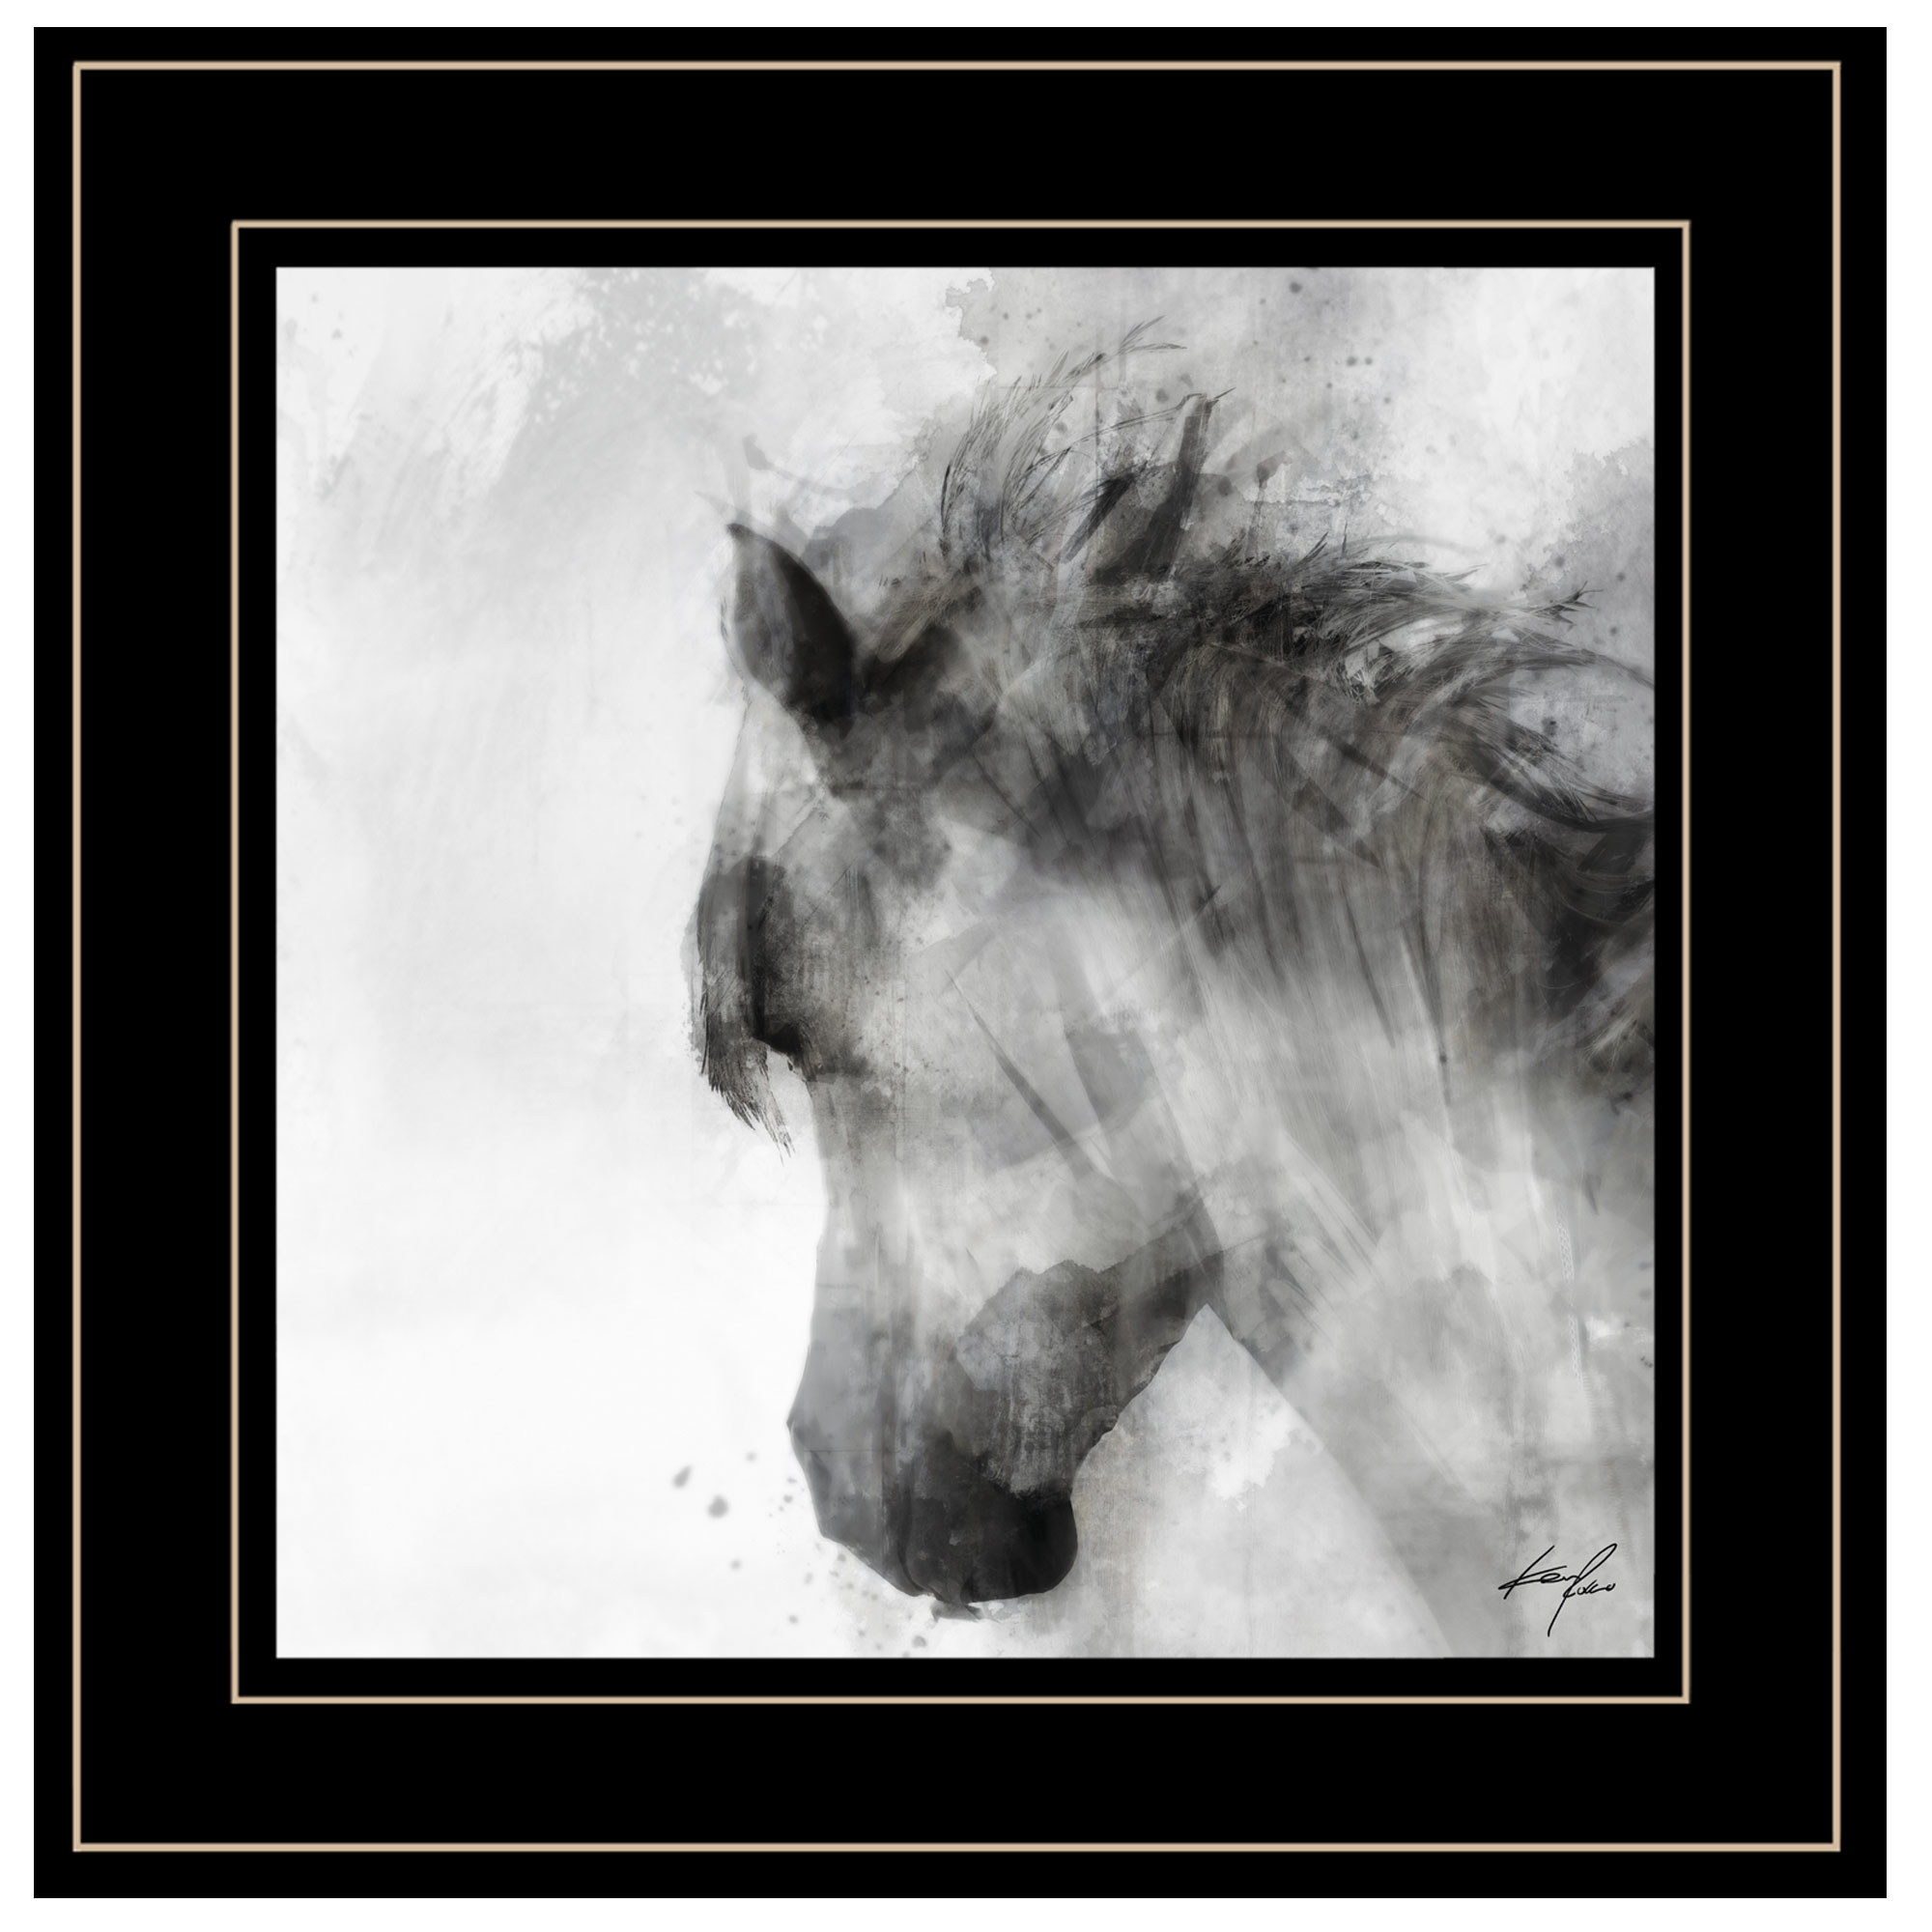 ""\""""Journey to the West Ii"""" by Ken Roko, Ready to Hang Framed Print, Black Frame""2000|2000|?|en|2|4f5473877d76aec90ebf09a6664af733|False|UNLIKELY|0.29156699776649475